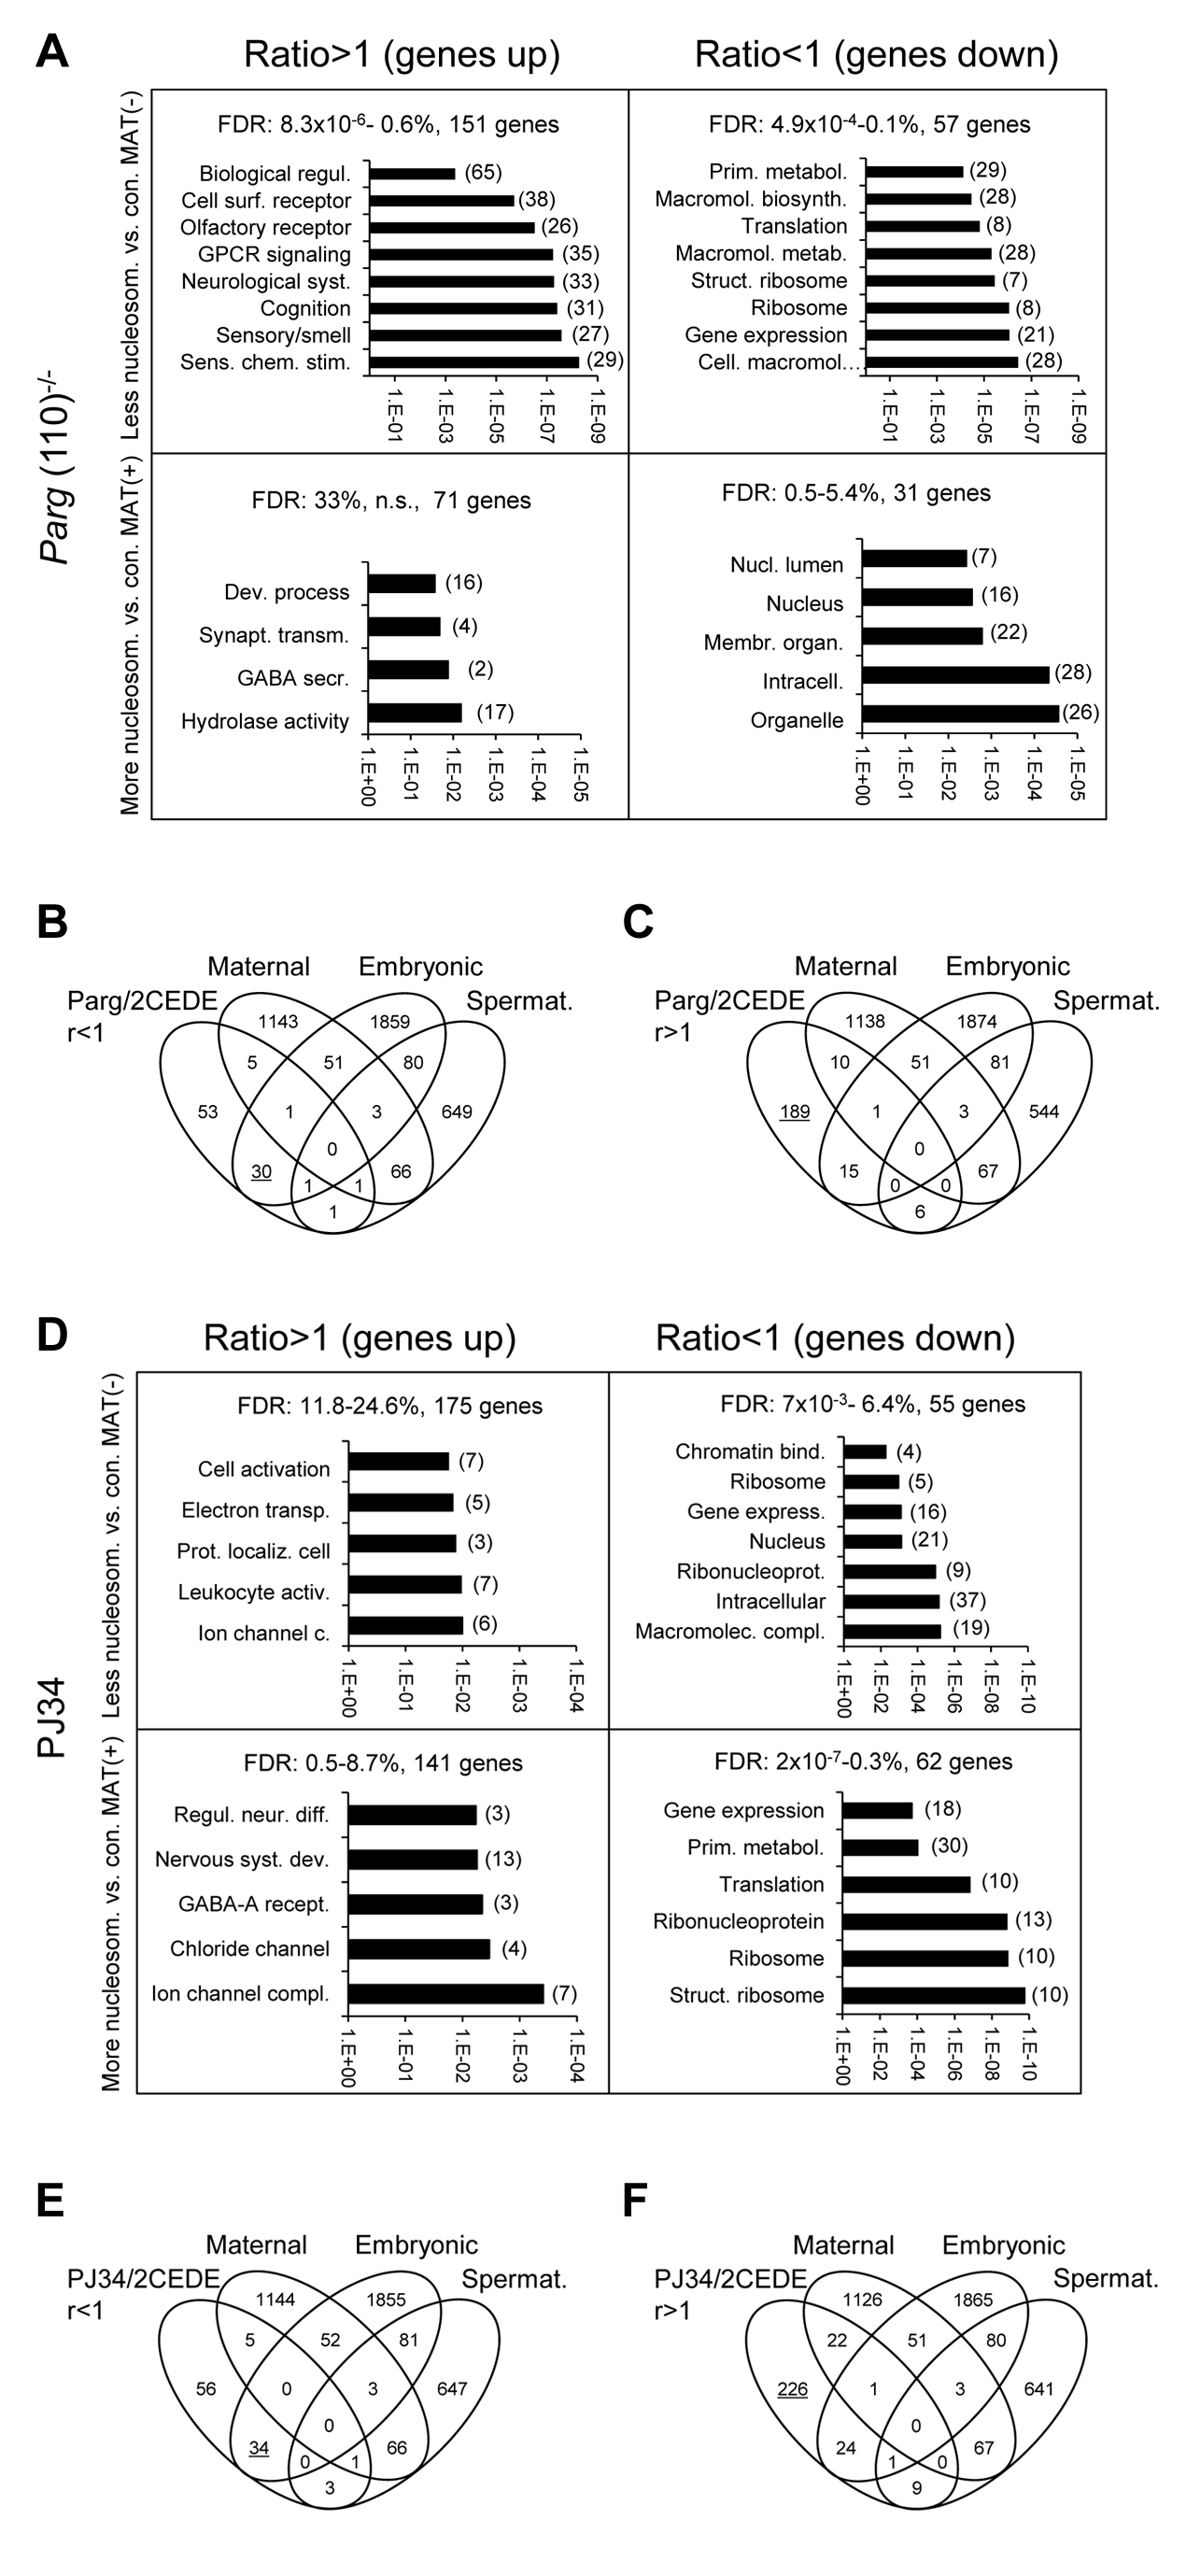 Genes that are affected by altered sperm histone association and differential gene expression in 2-cell embryo progeny in the <i>Parg</i>(110)<sup>−/−</sup> (A, B, C) and PJ34-treated (D, E, F) mouse models share some common functional relevance.